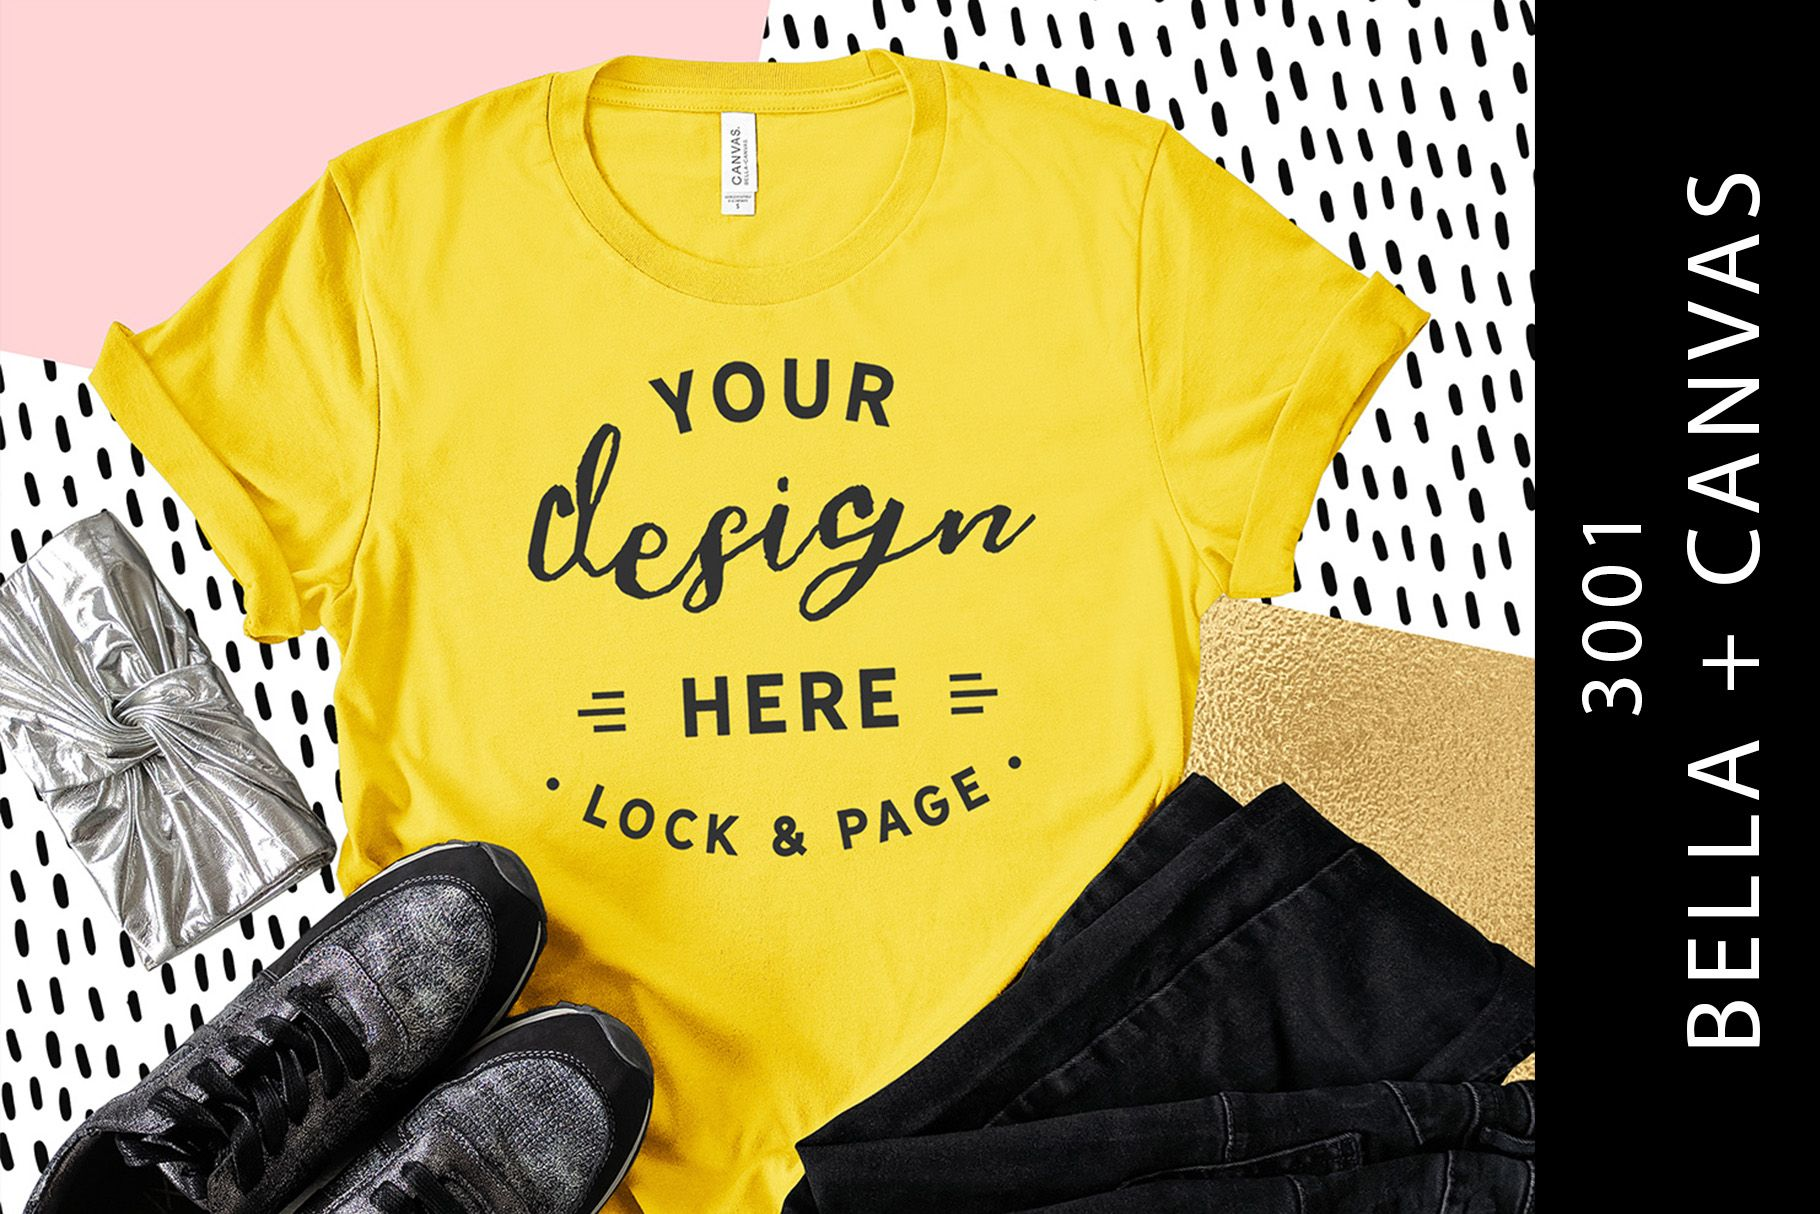 Download Yellow Bella Canvas 3001 T Shirt Mockup Graphic By Lockandpage Creative Fabrica In 2020 Mockup Free Psd Shirt Mockup Free Psd Mockups Templates